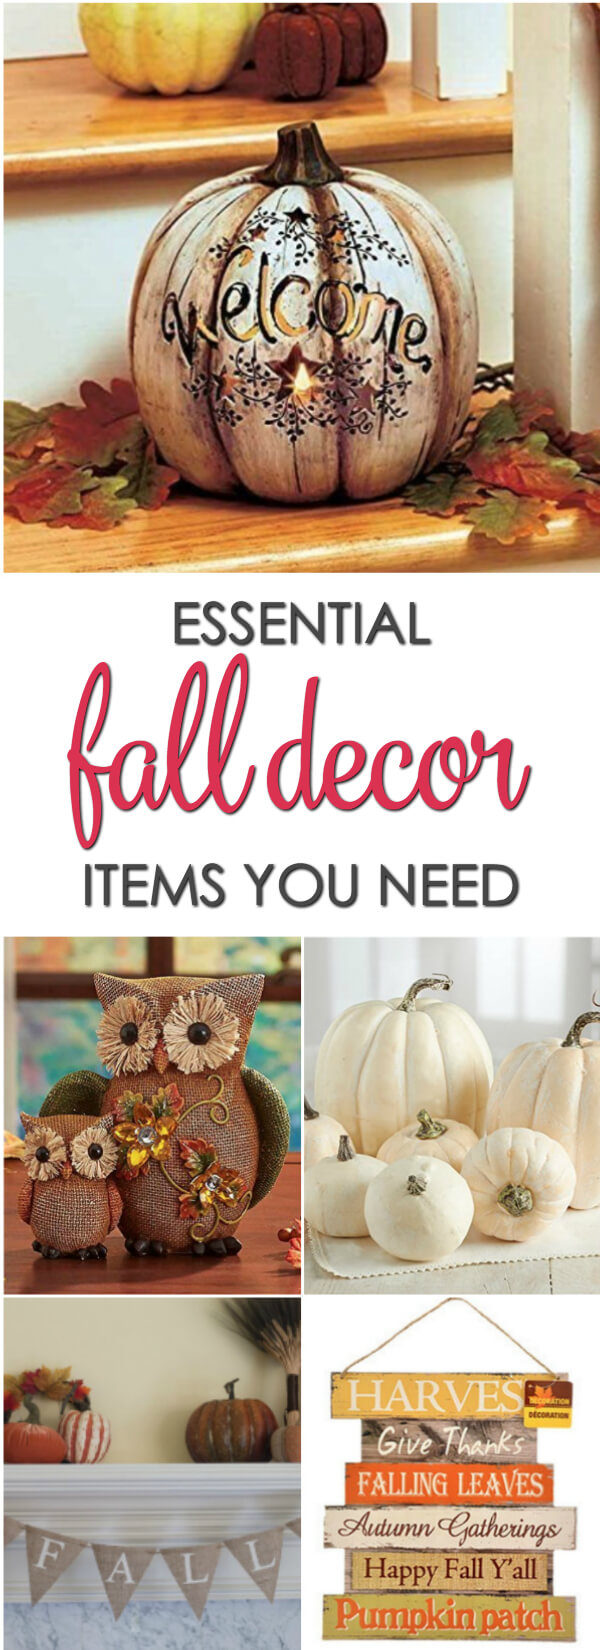 Must have decor to get your home ready for fall